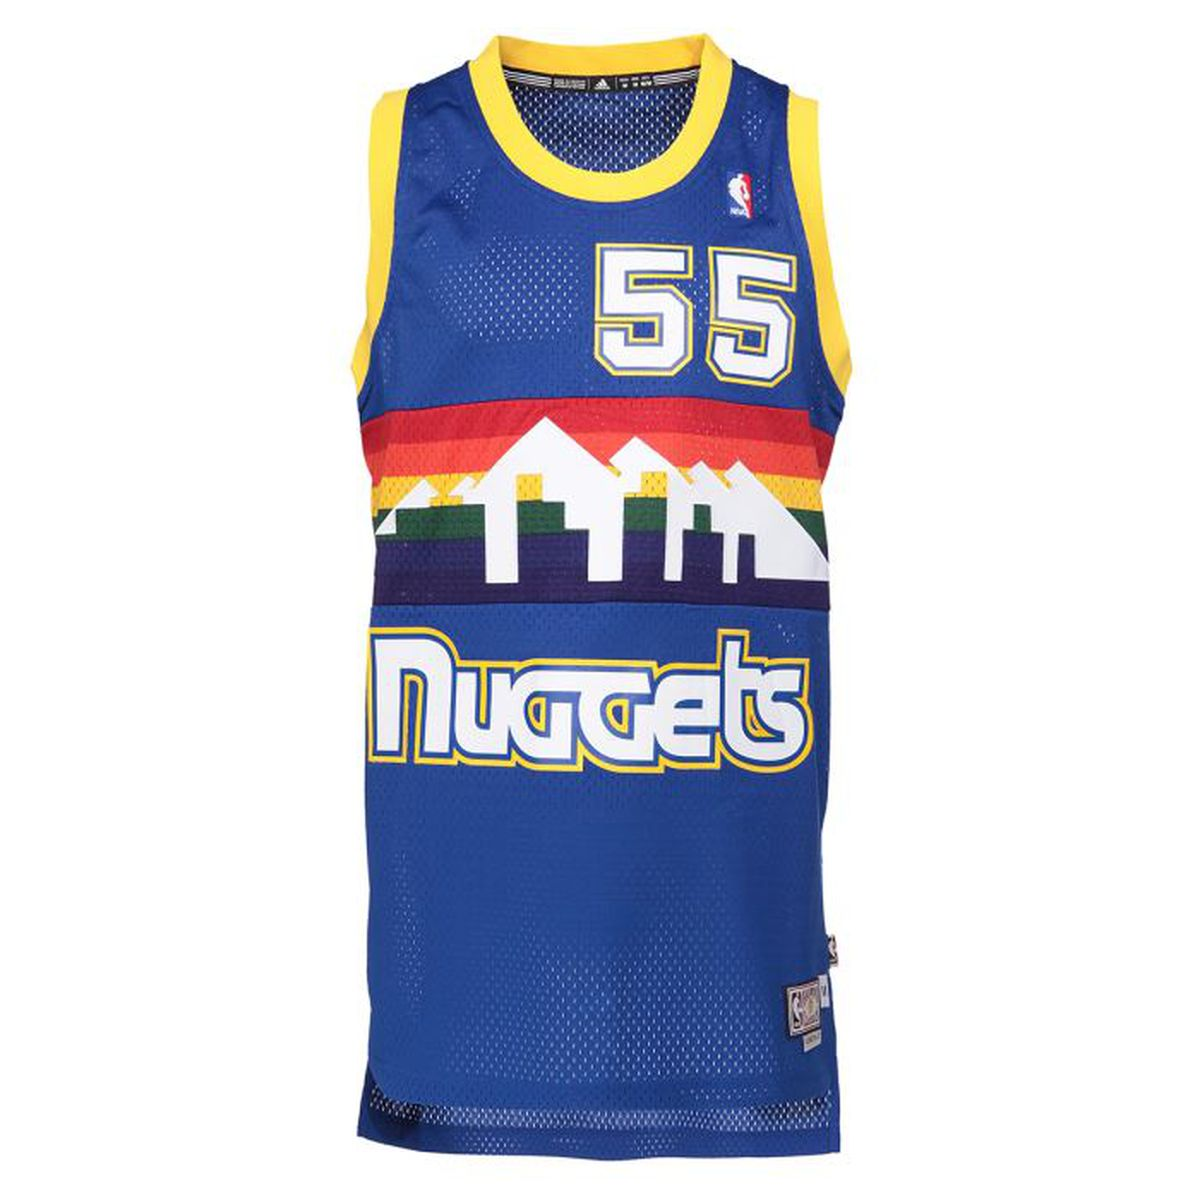 adidas maillot basket nba nuggets mutombo homme prix pas cher soldes cdiscount. Black Bedroom Furniture Sets. Home Design Ideas